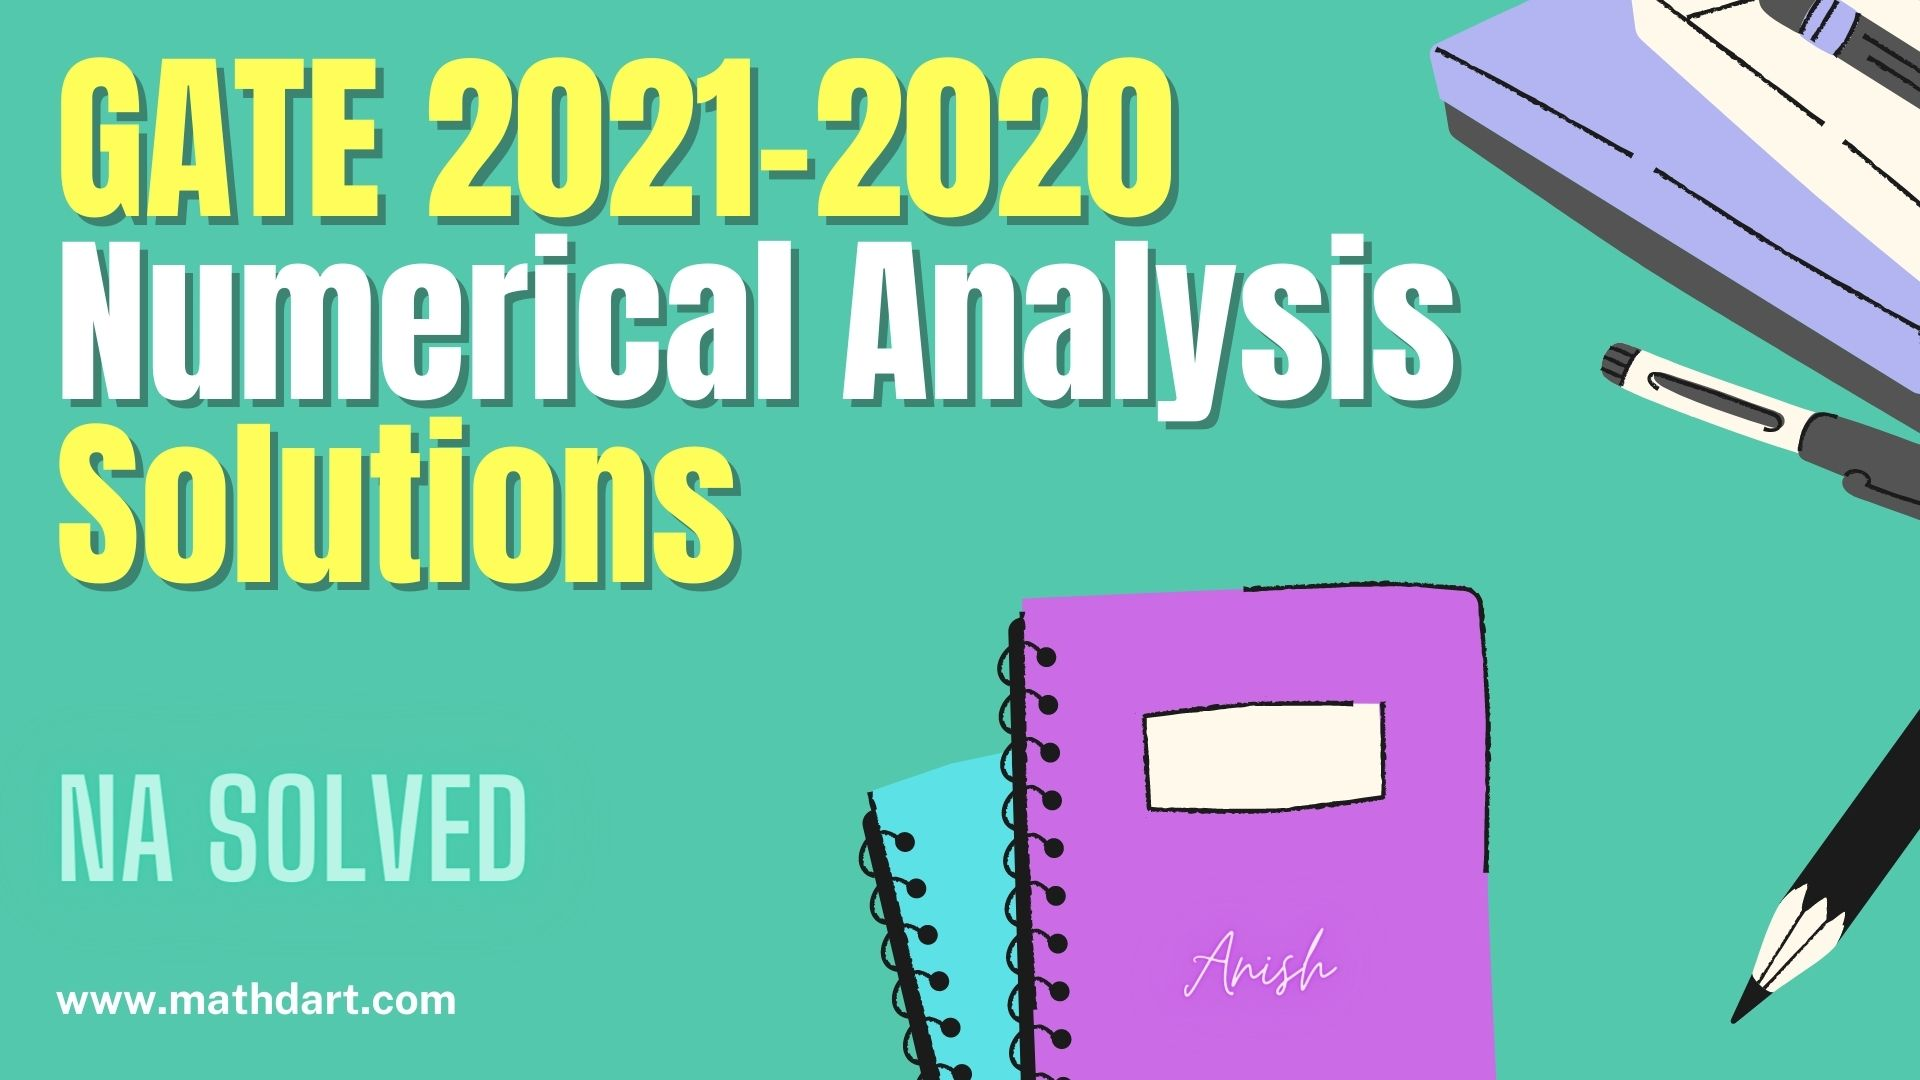 Numerical Analysis GATE Solutions 2021 & 2020